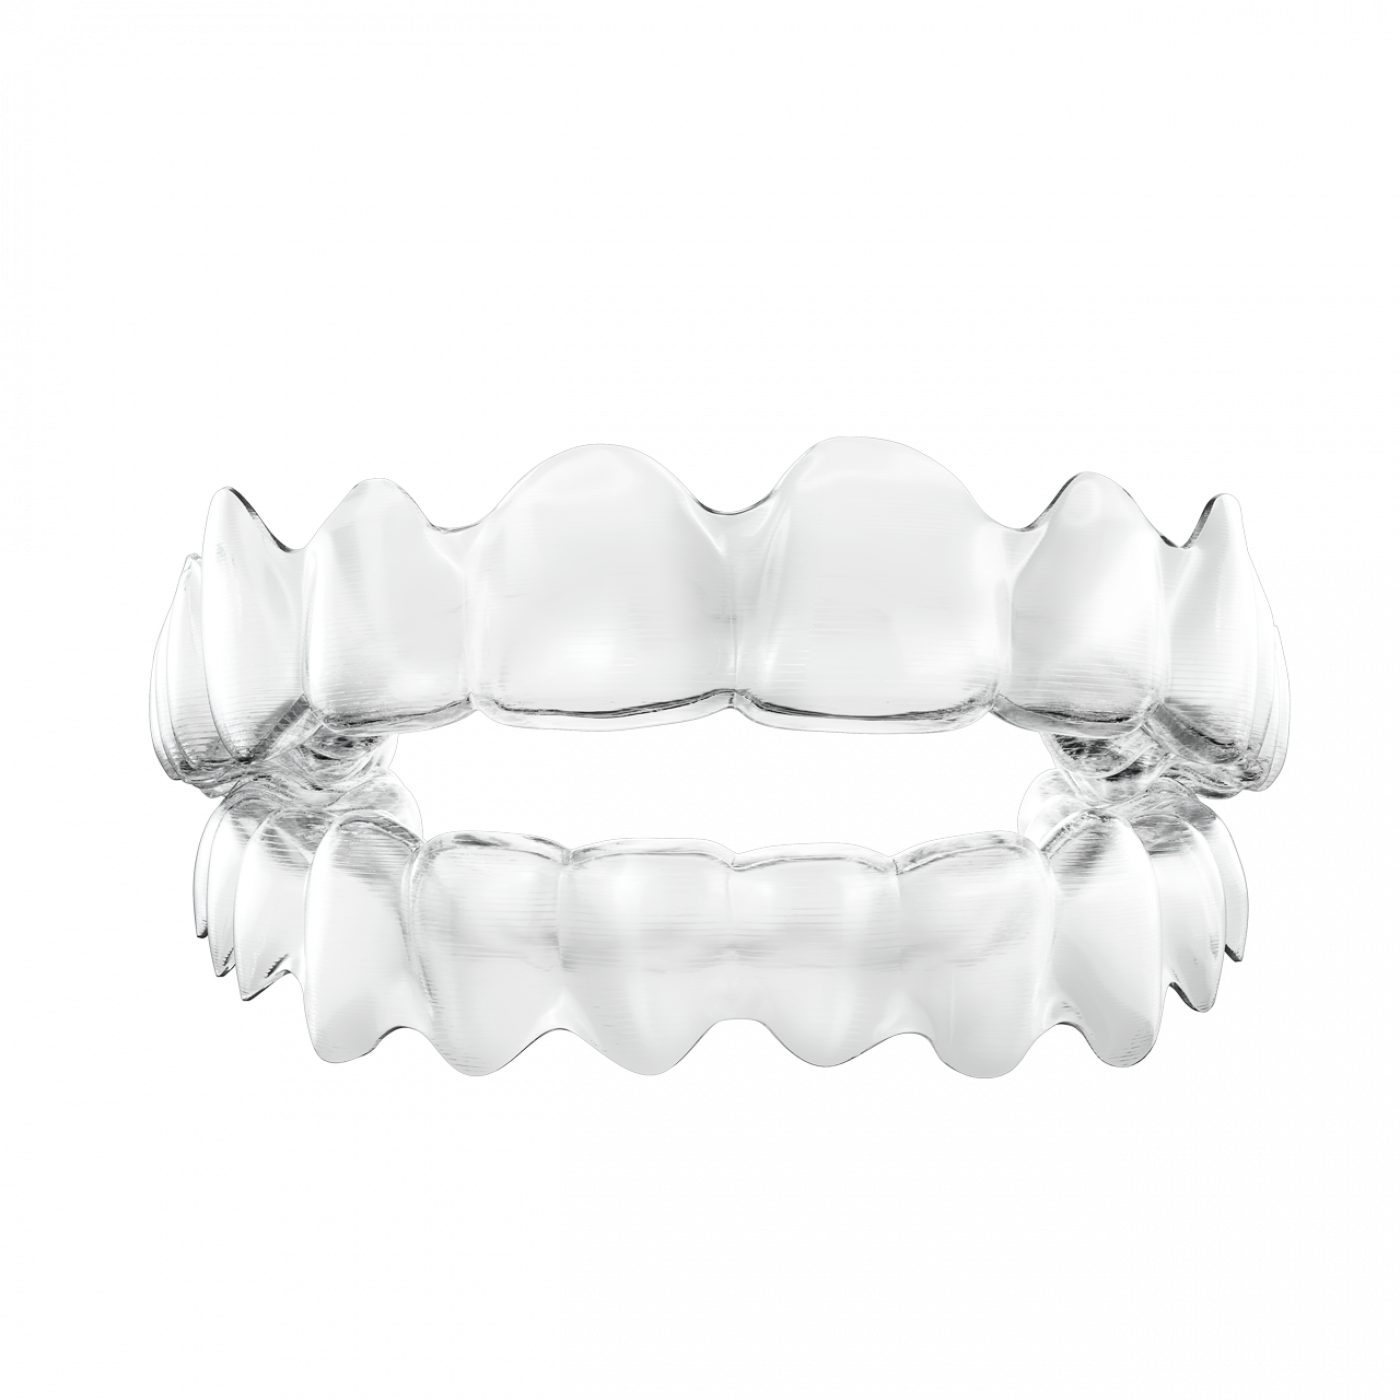 Invisalign Grosvenor Dental Care